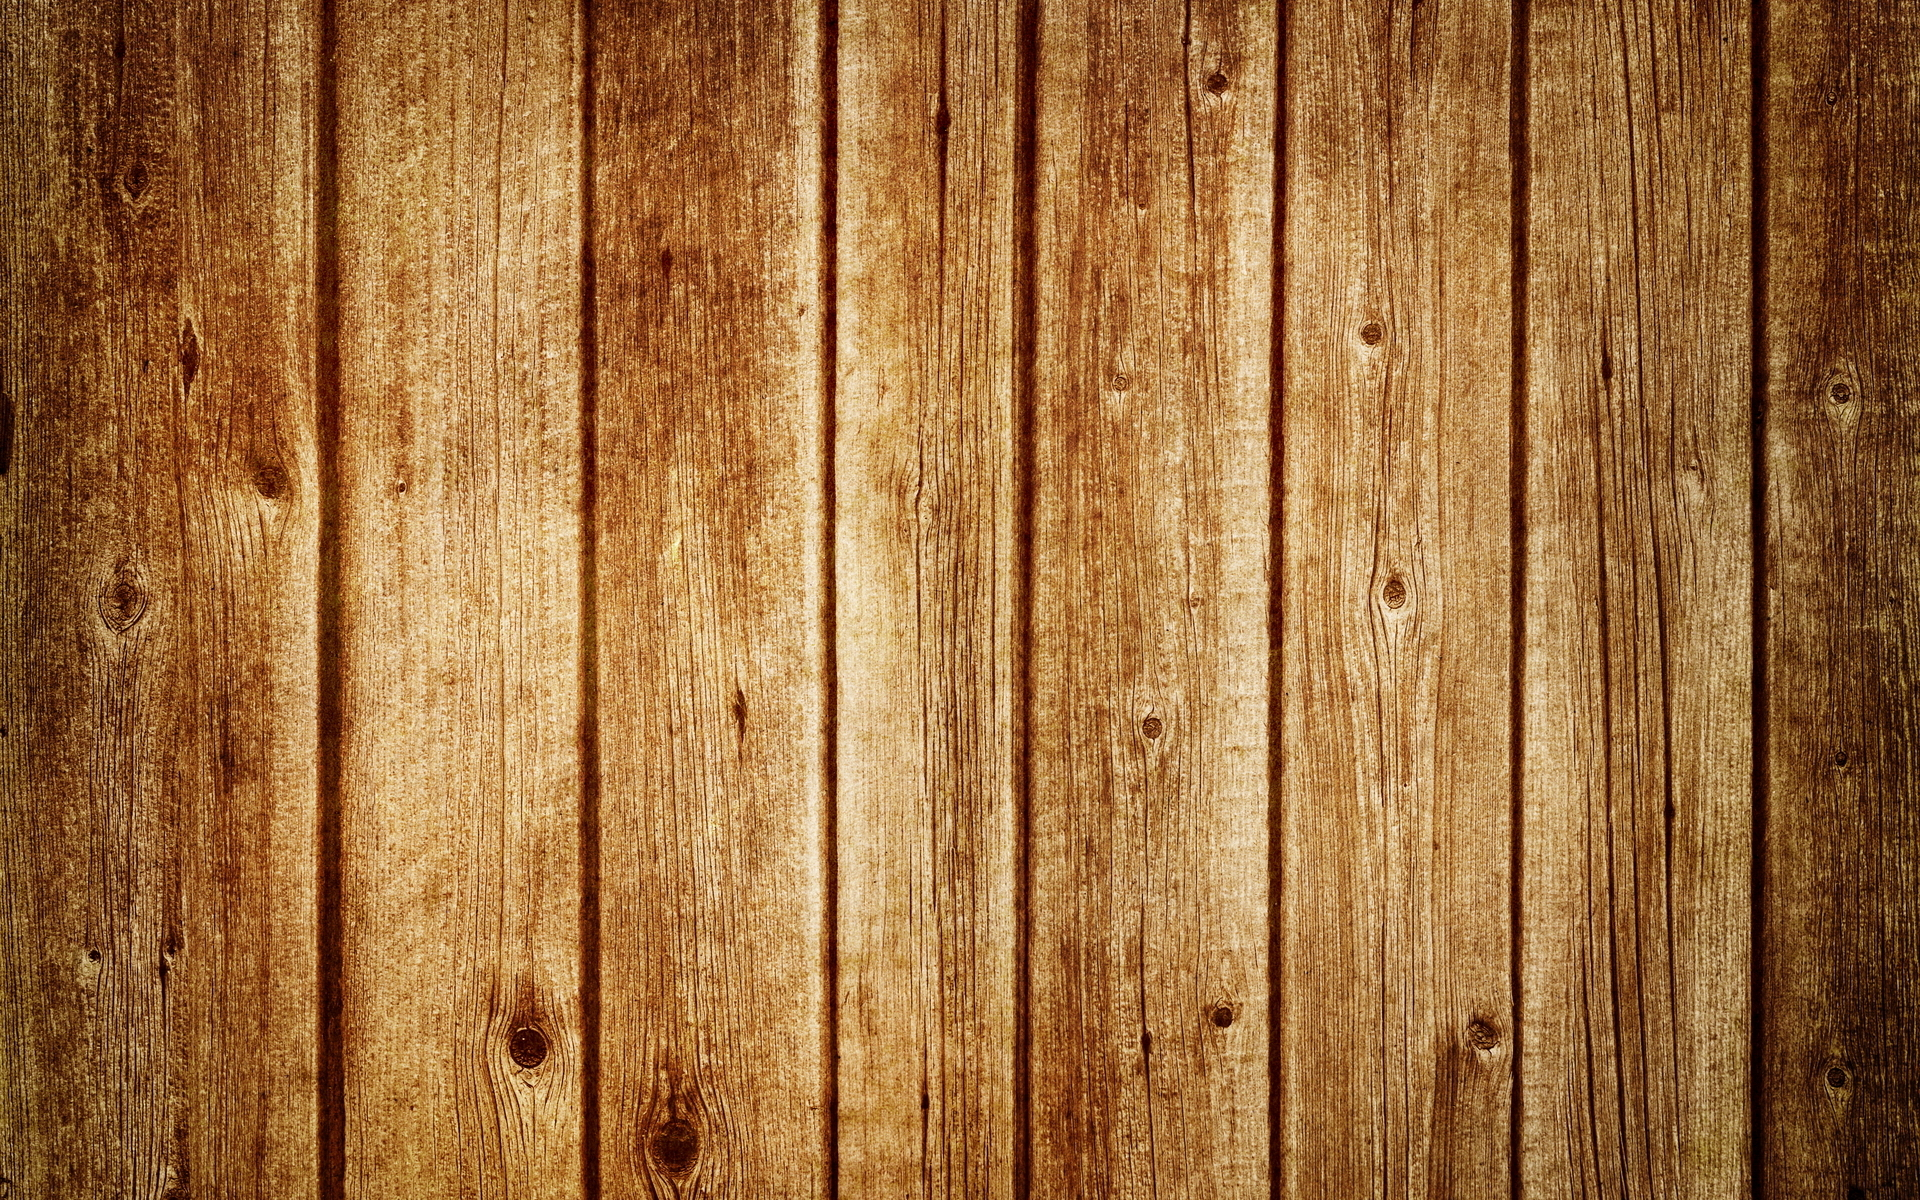 clipart library library Wood wall clipart. Free cliparts download clip.